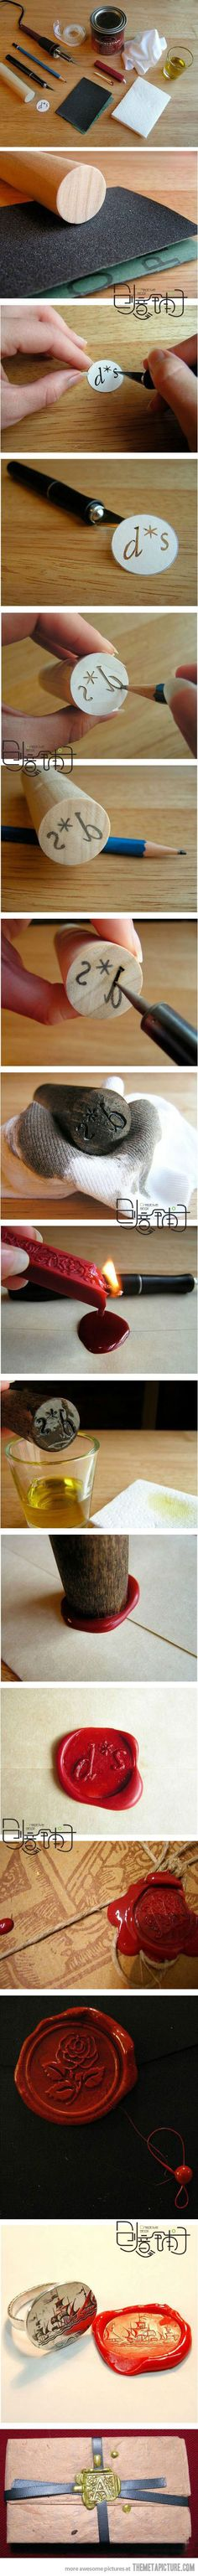 homemade wax seal... looks like some work... but its cool.